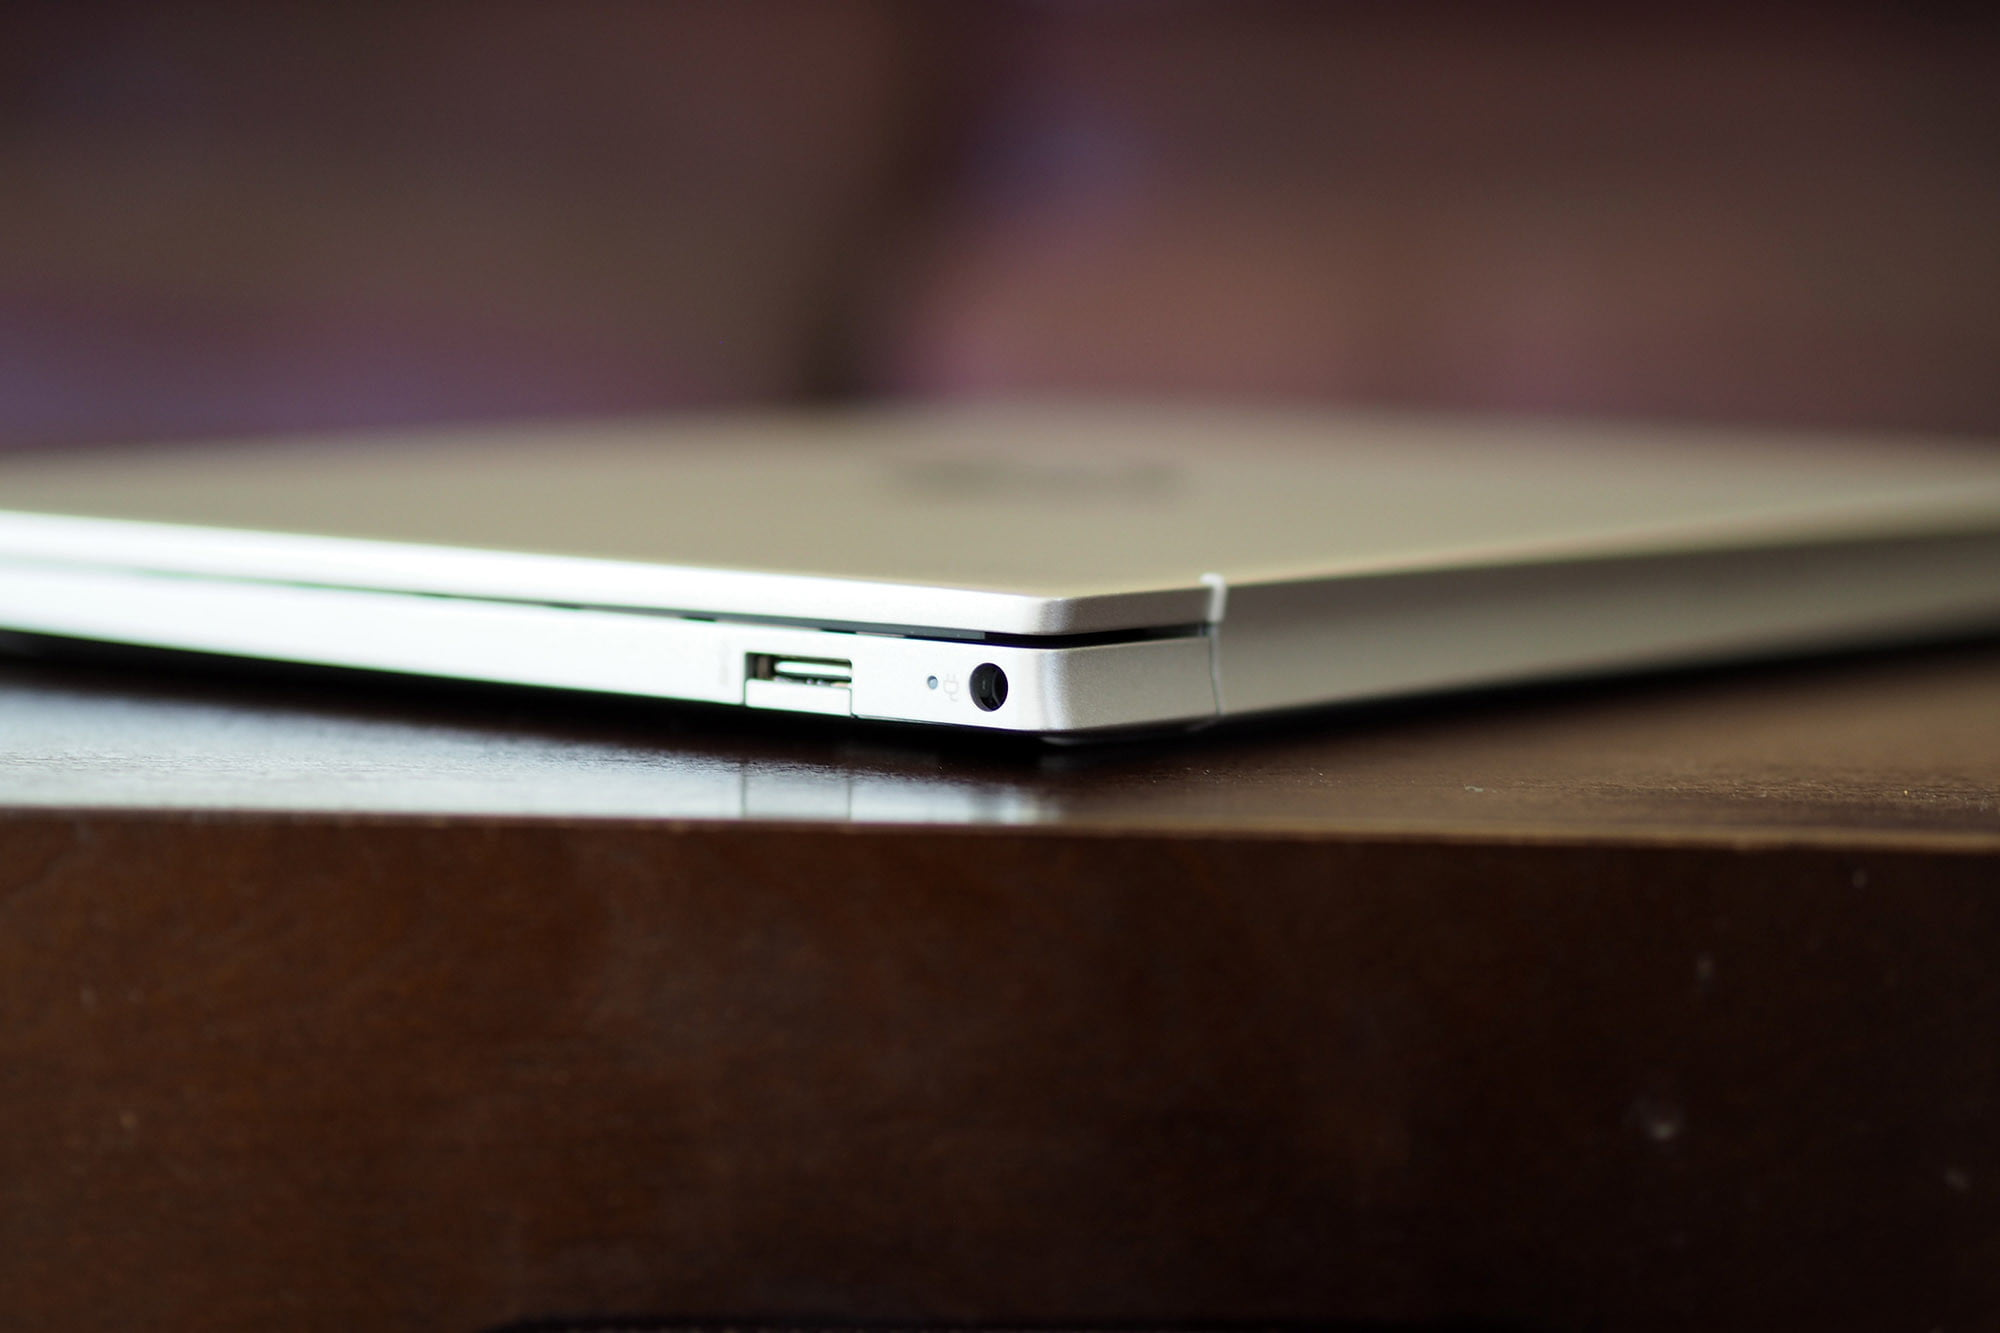 HP Pavilion Aero 13 right side view, charging port.